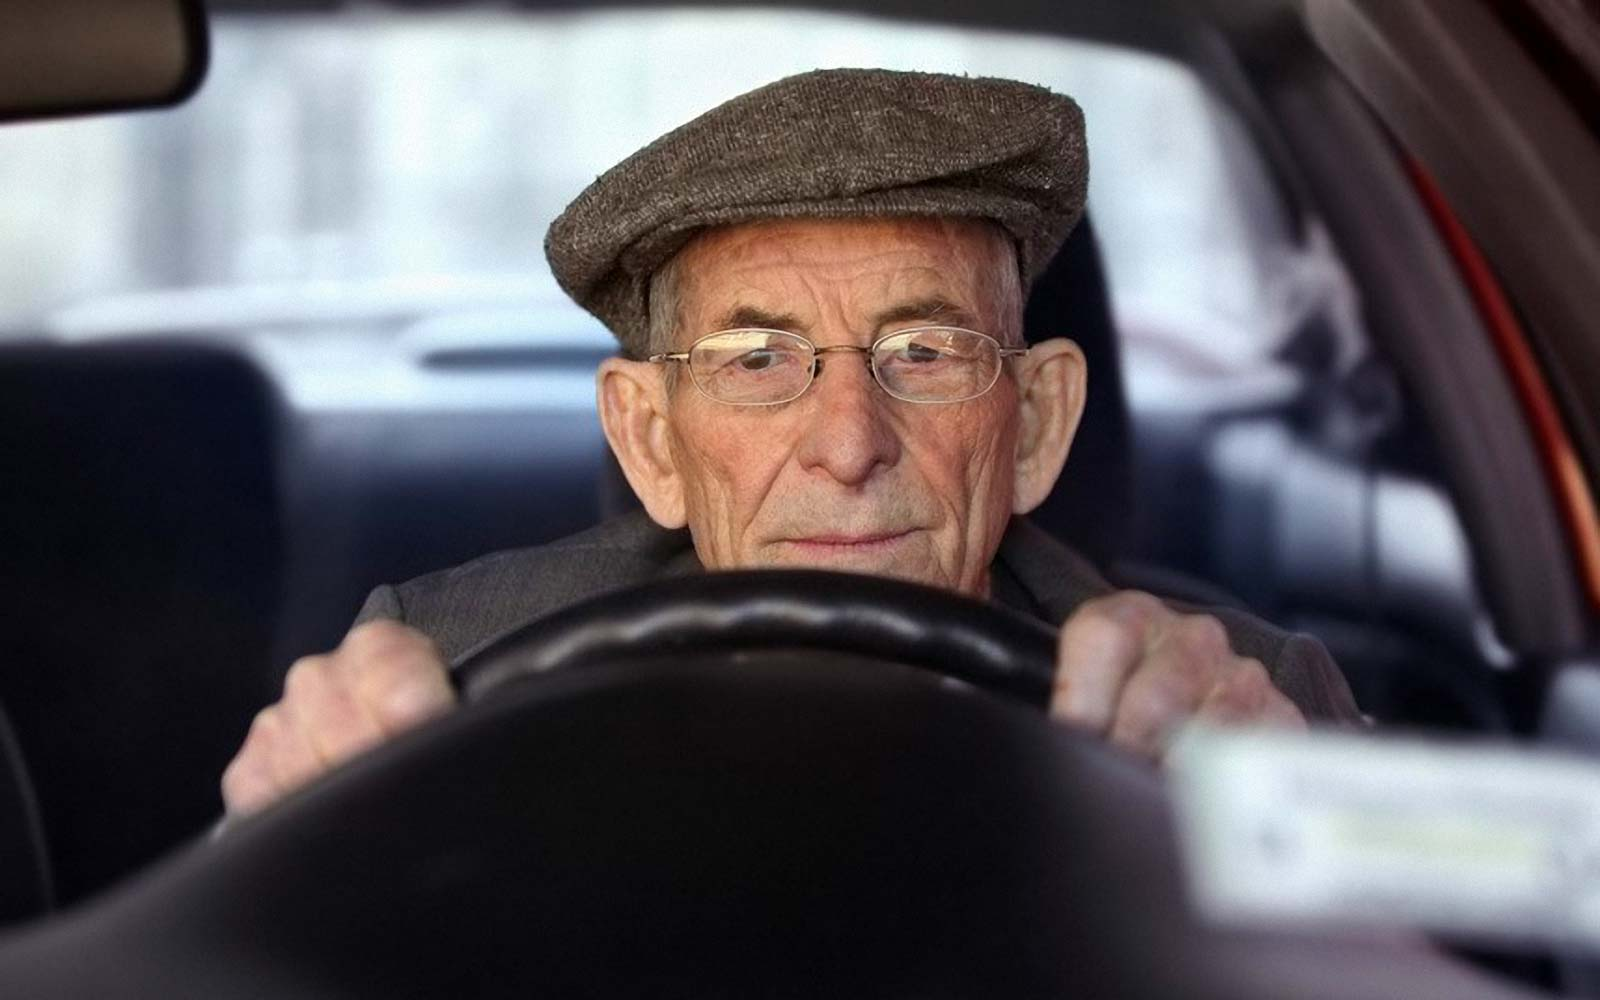 Grandpa in car